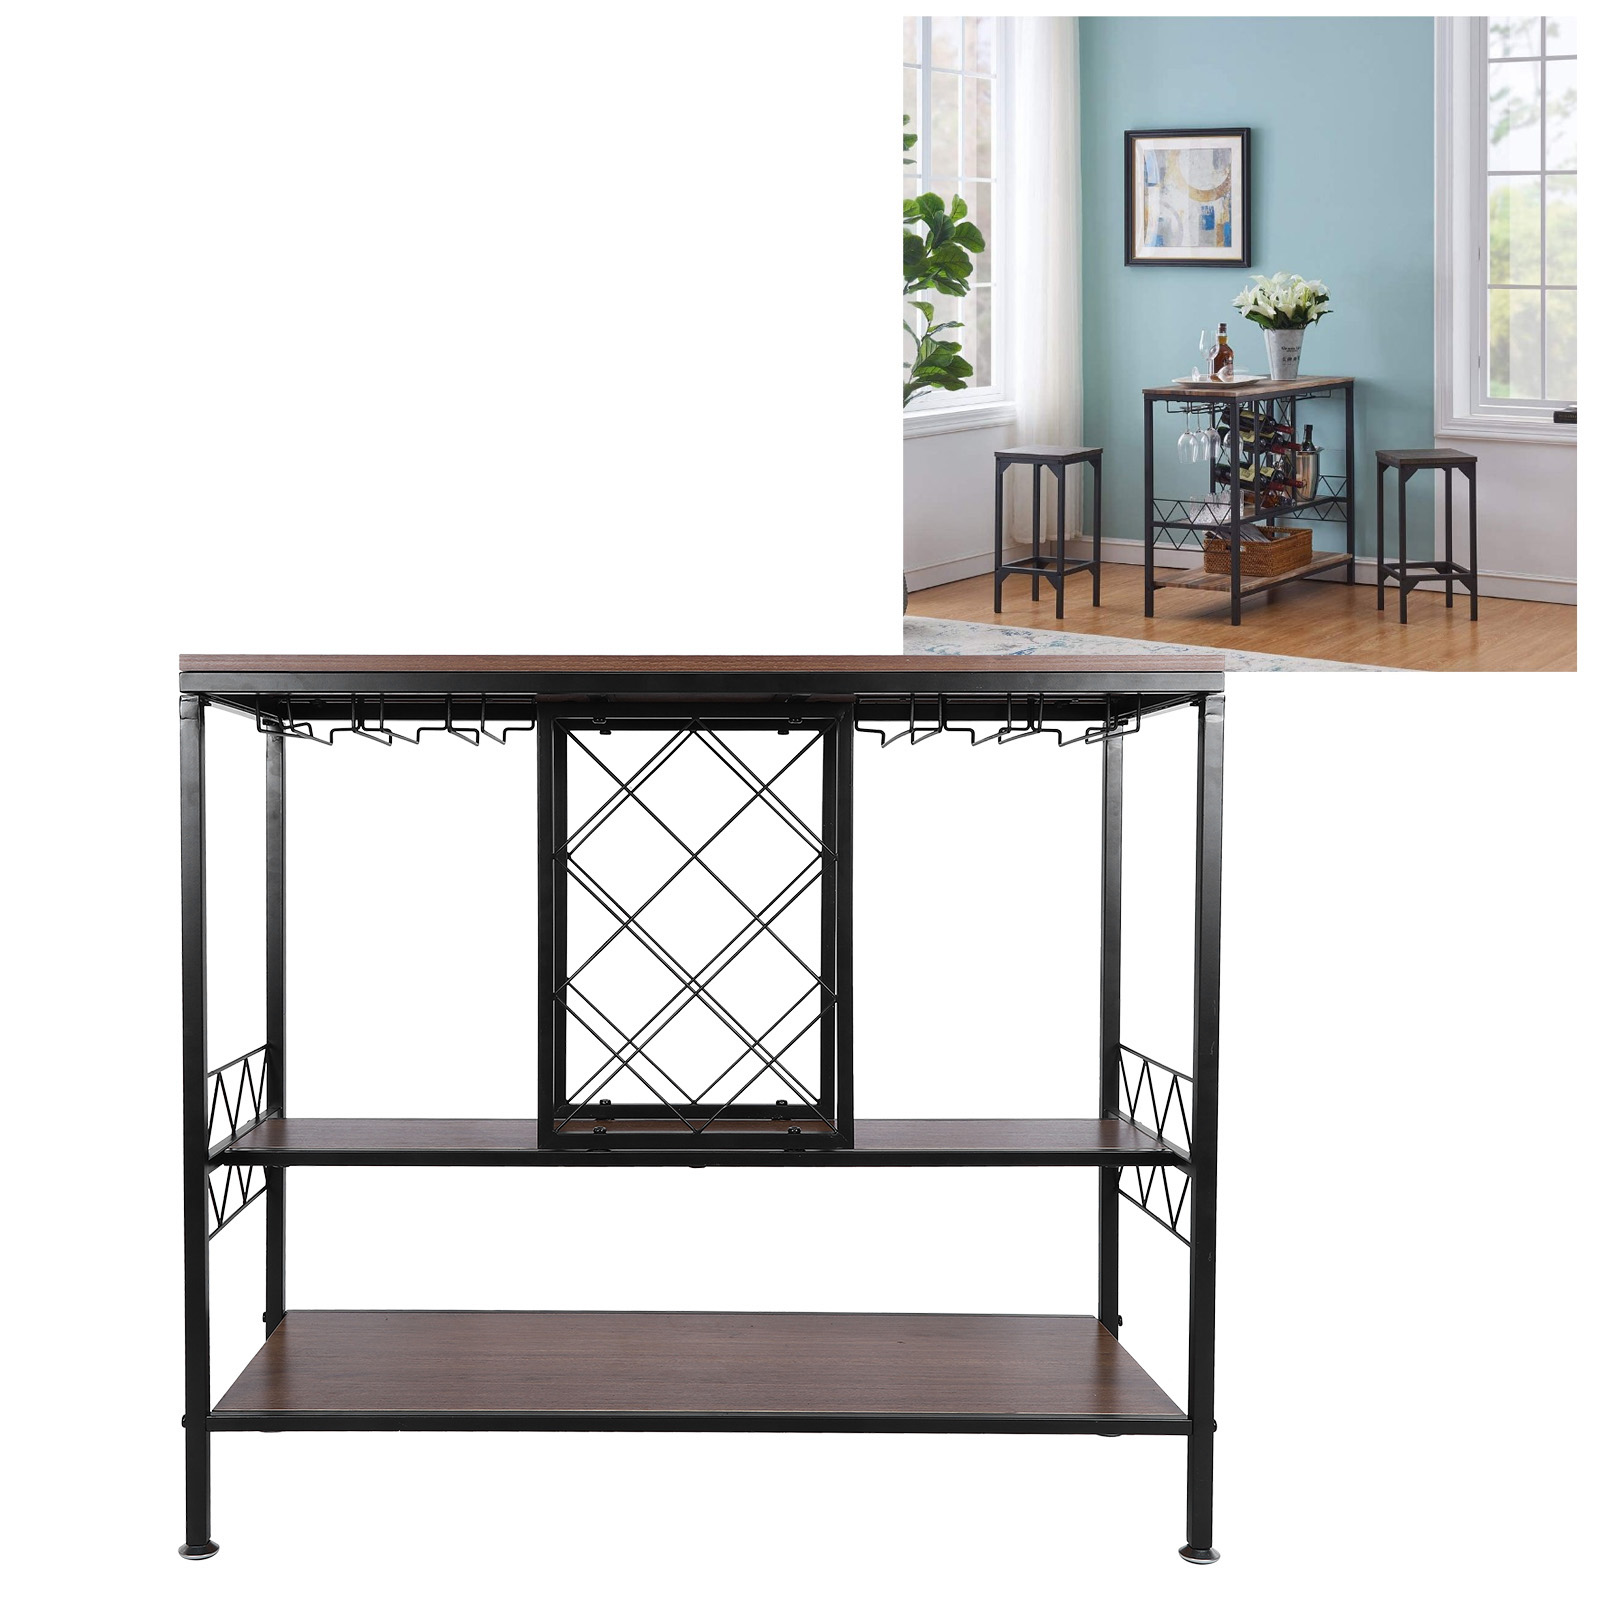 Higoodz Wine Table Wine Cabinet 3 Layer Wine Rack Table With Glass Holder Wine Cabinets Organizer Home Living Room Bar Supply Walmart Com Walmart Com